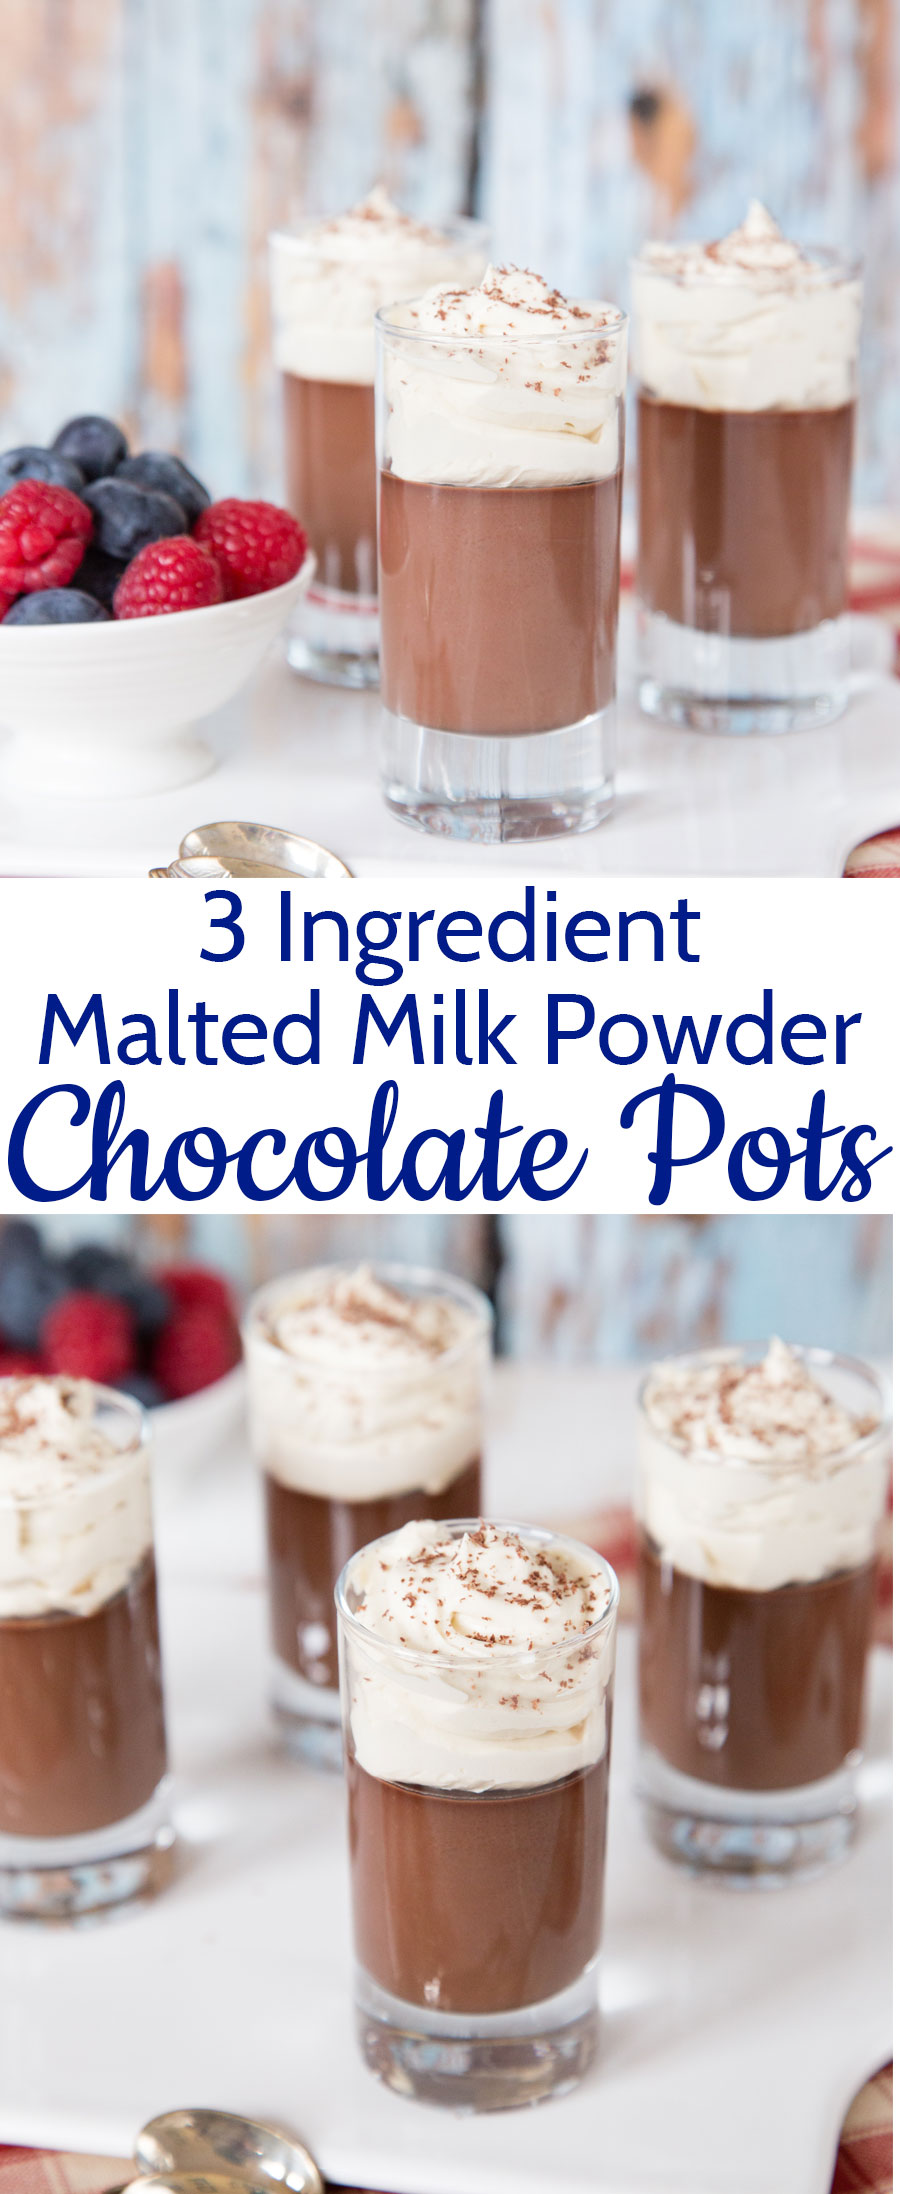 These malted milk powder chocolate pots are decadent, but easy to make dessert with only three ingredients.